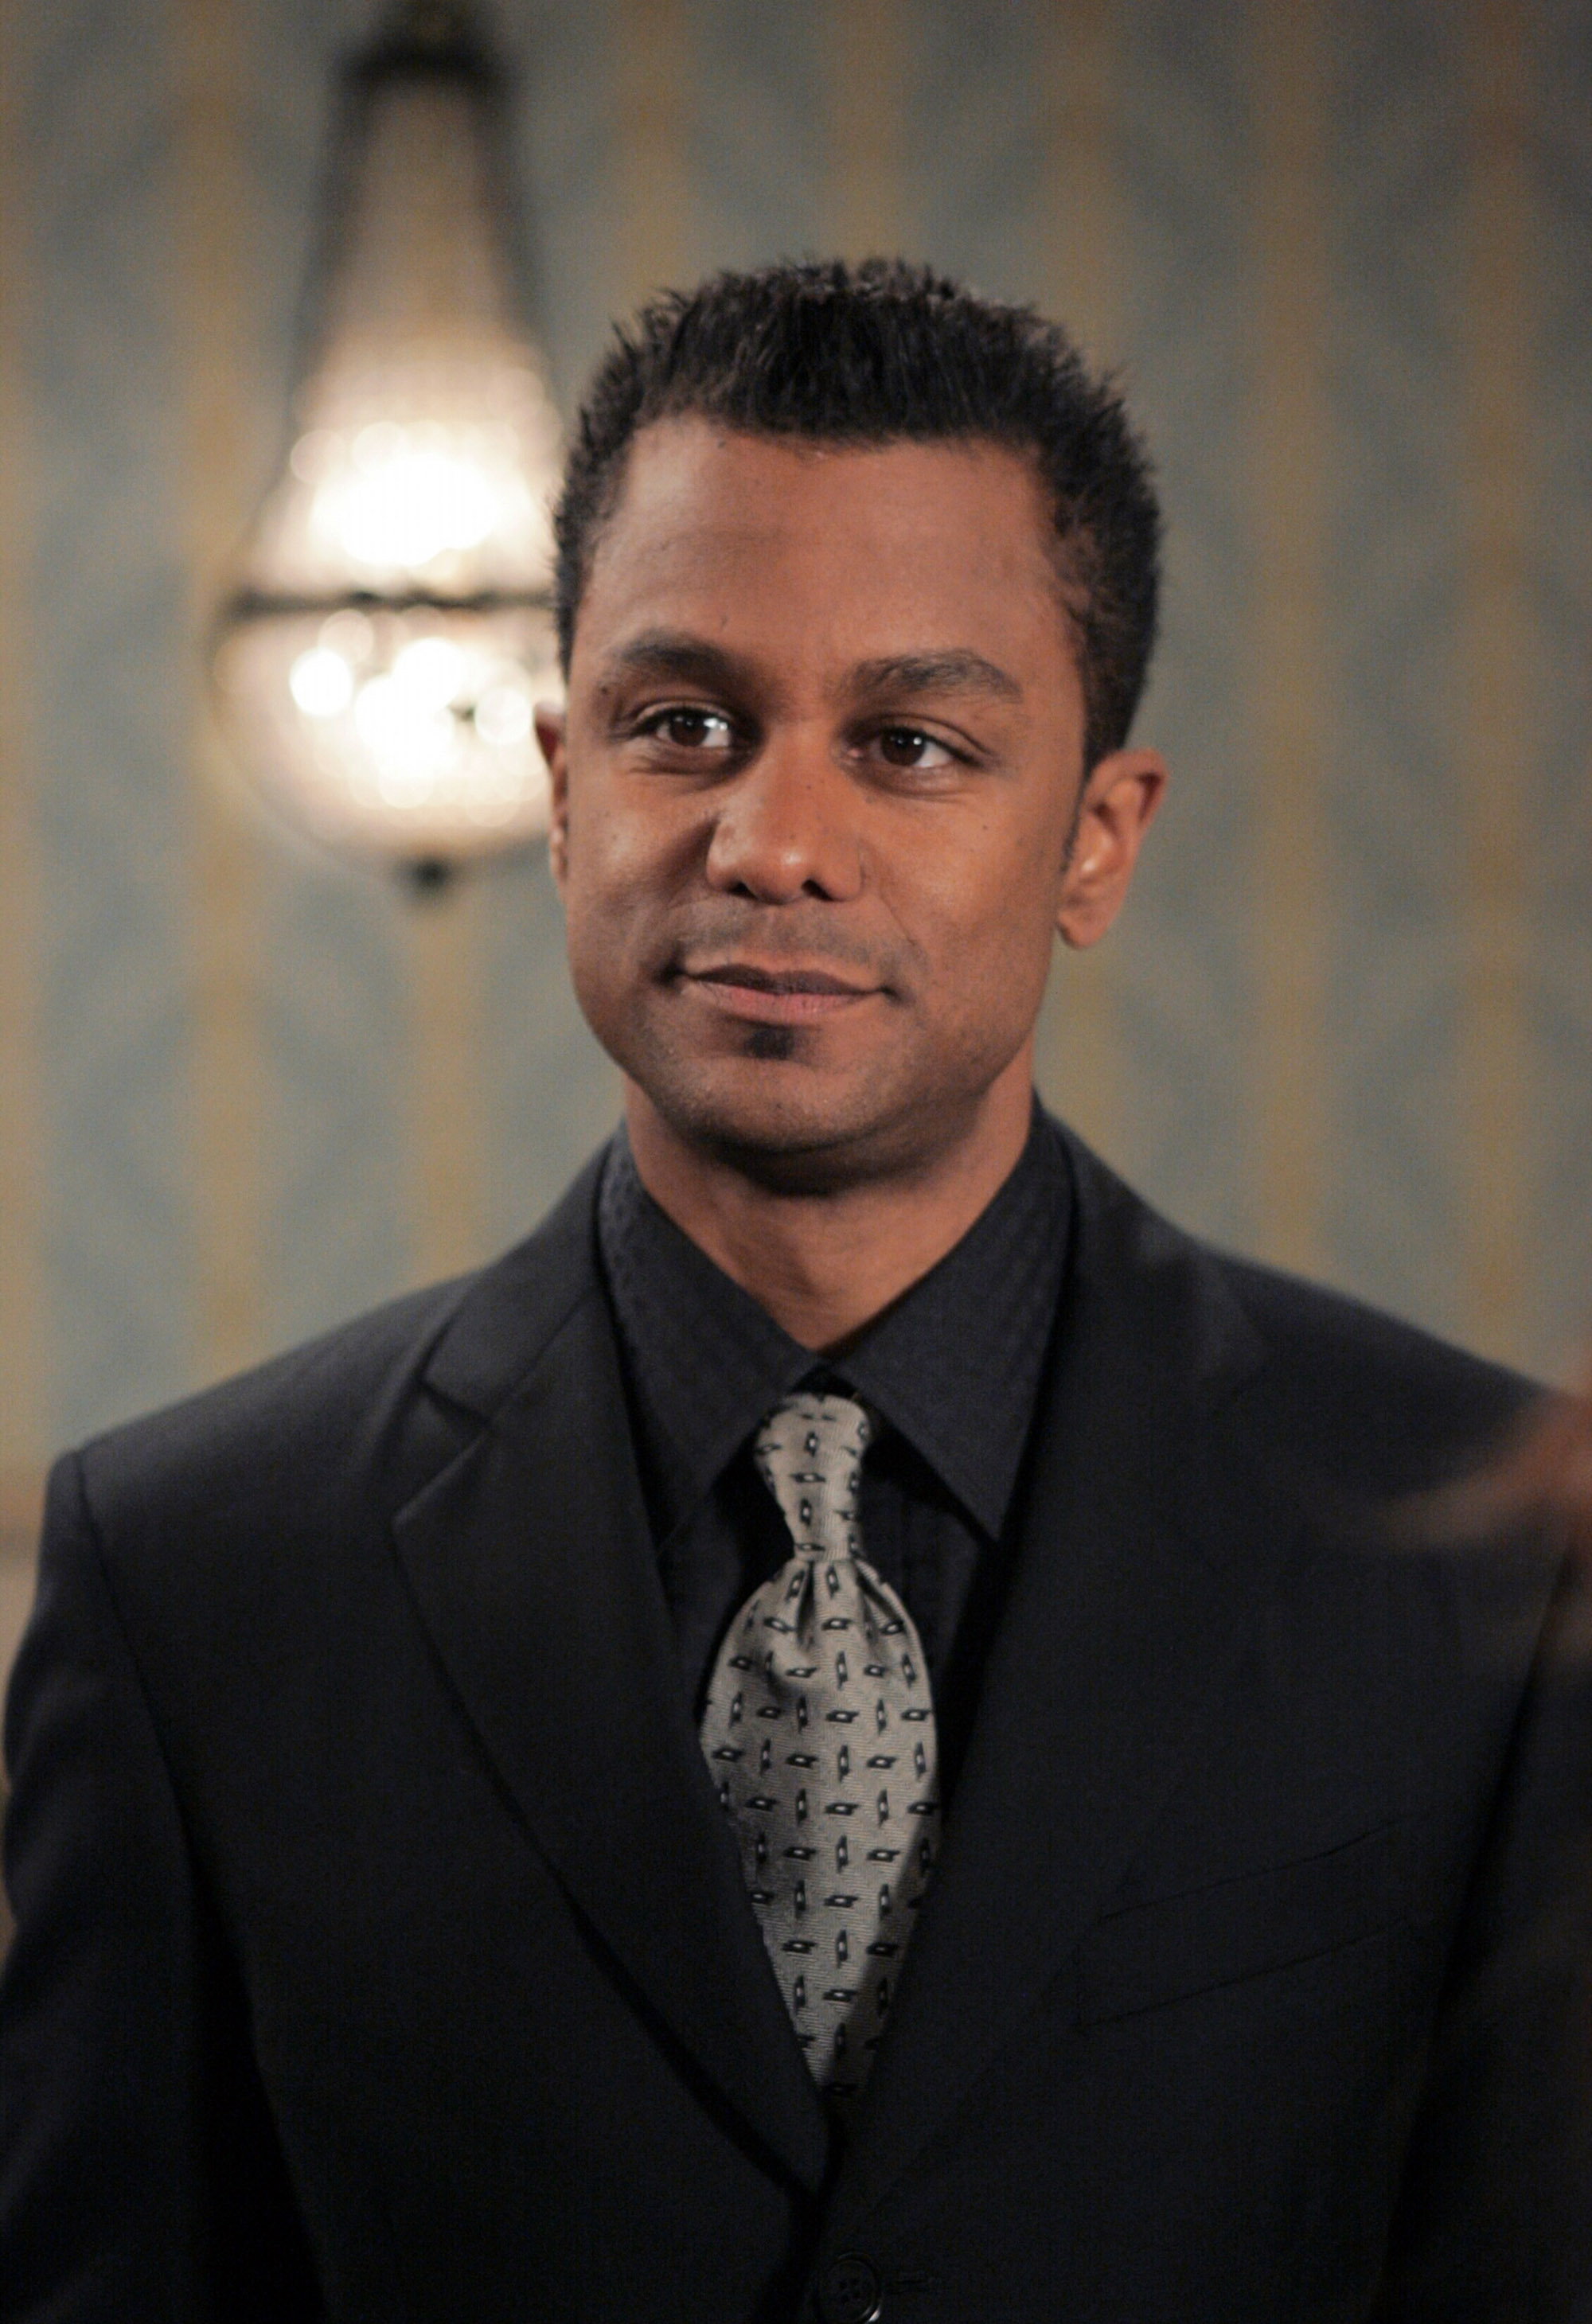 yanic truesdaleyanic truesdale indian, yanic truesdale interview, yanic truesdale, yanic truesdale partner, yanic truesdale biography, yanic truesdale youtube, yanic truesdale wiki, yanic truesdale wife, yanic truesdale married, yanic truesdale accent, yanic truesdale instagram, yanic truesdale twitter, yanic truesdale ethnicity, yanic truesdale spouse, yanic truesdale net worth, yanic truesdale imdb, yanic truesdale girlfriend, yanic truesdale shirtless, yanic truesdale montreal, yanic truesdale spin